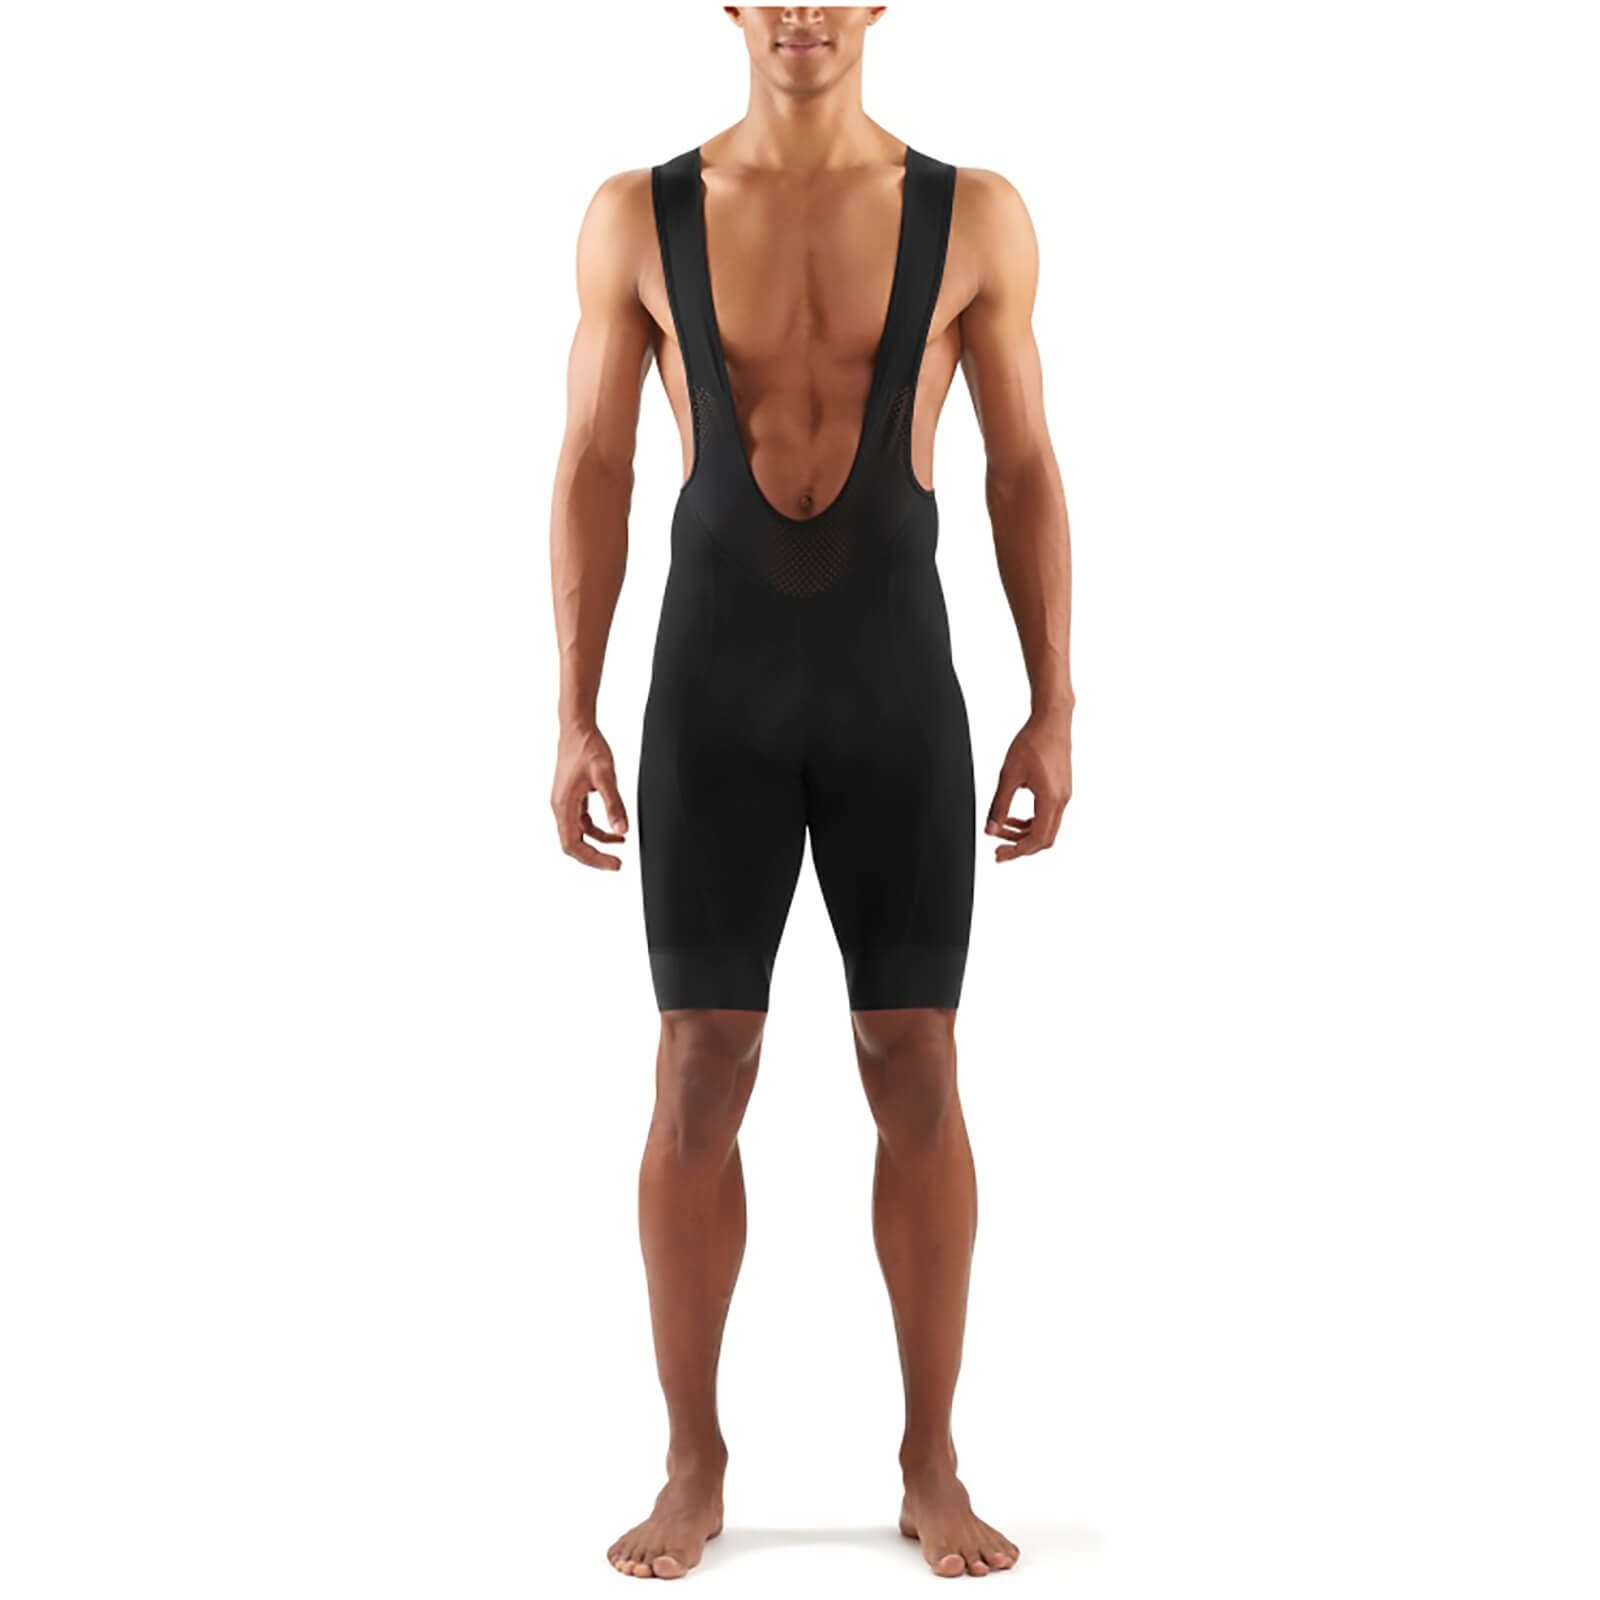 Skins DNAmic Bib Shorts - Black